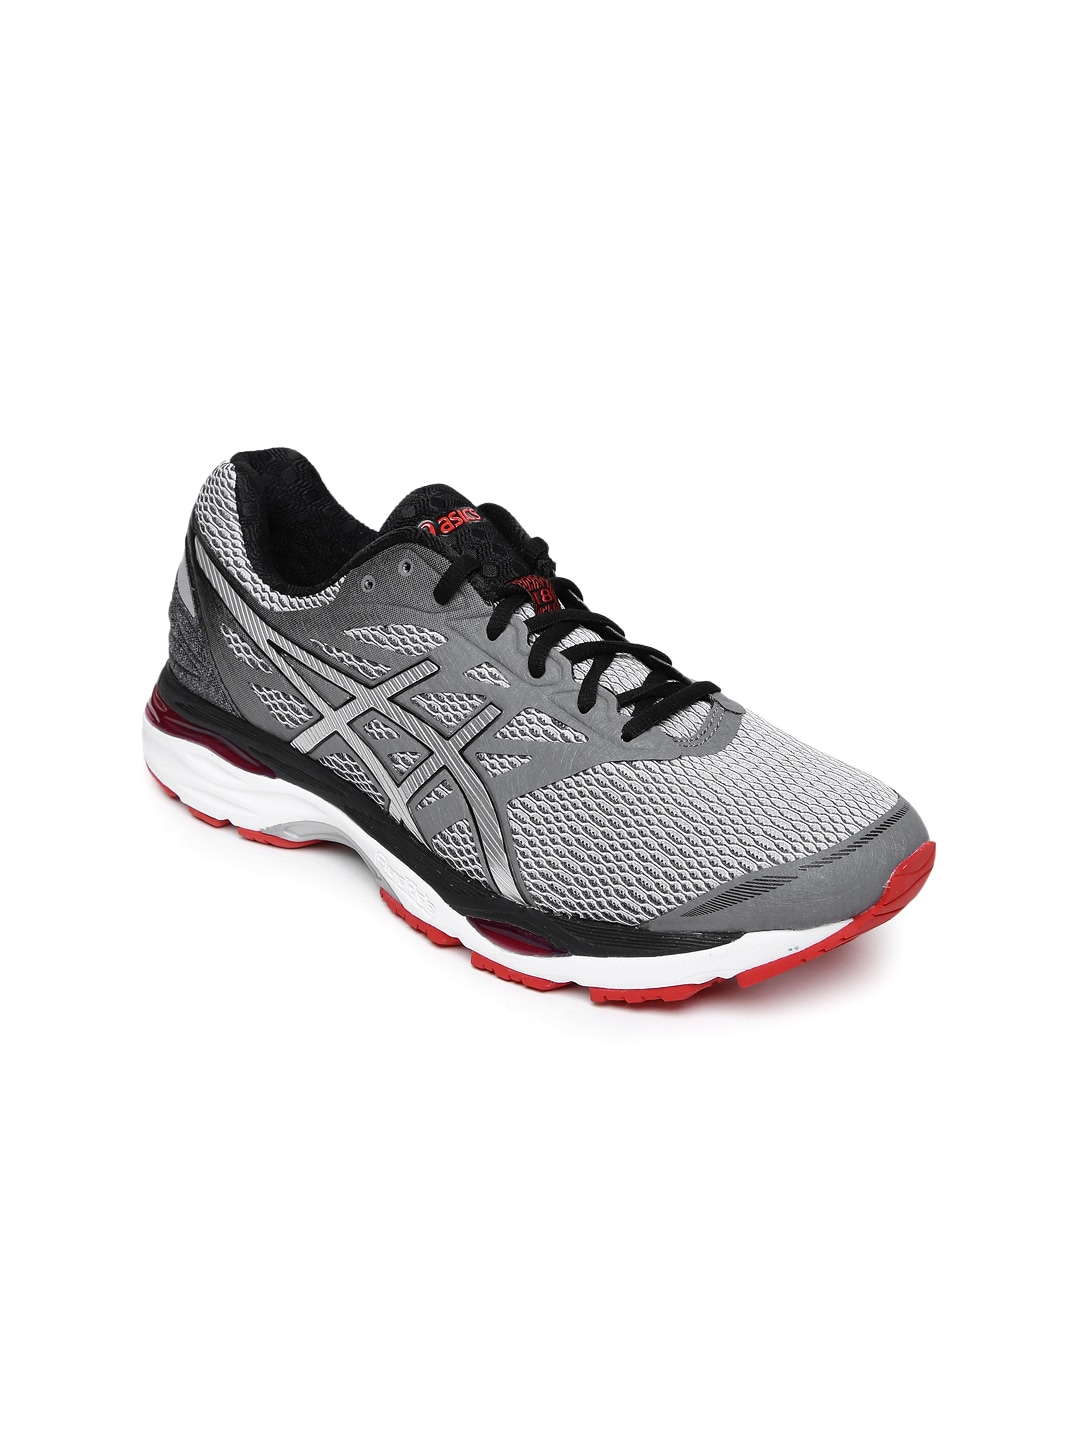 Asics Shoes - Buy Asics Shoes for Men and Women Online - Myntra 5d6435db4